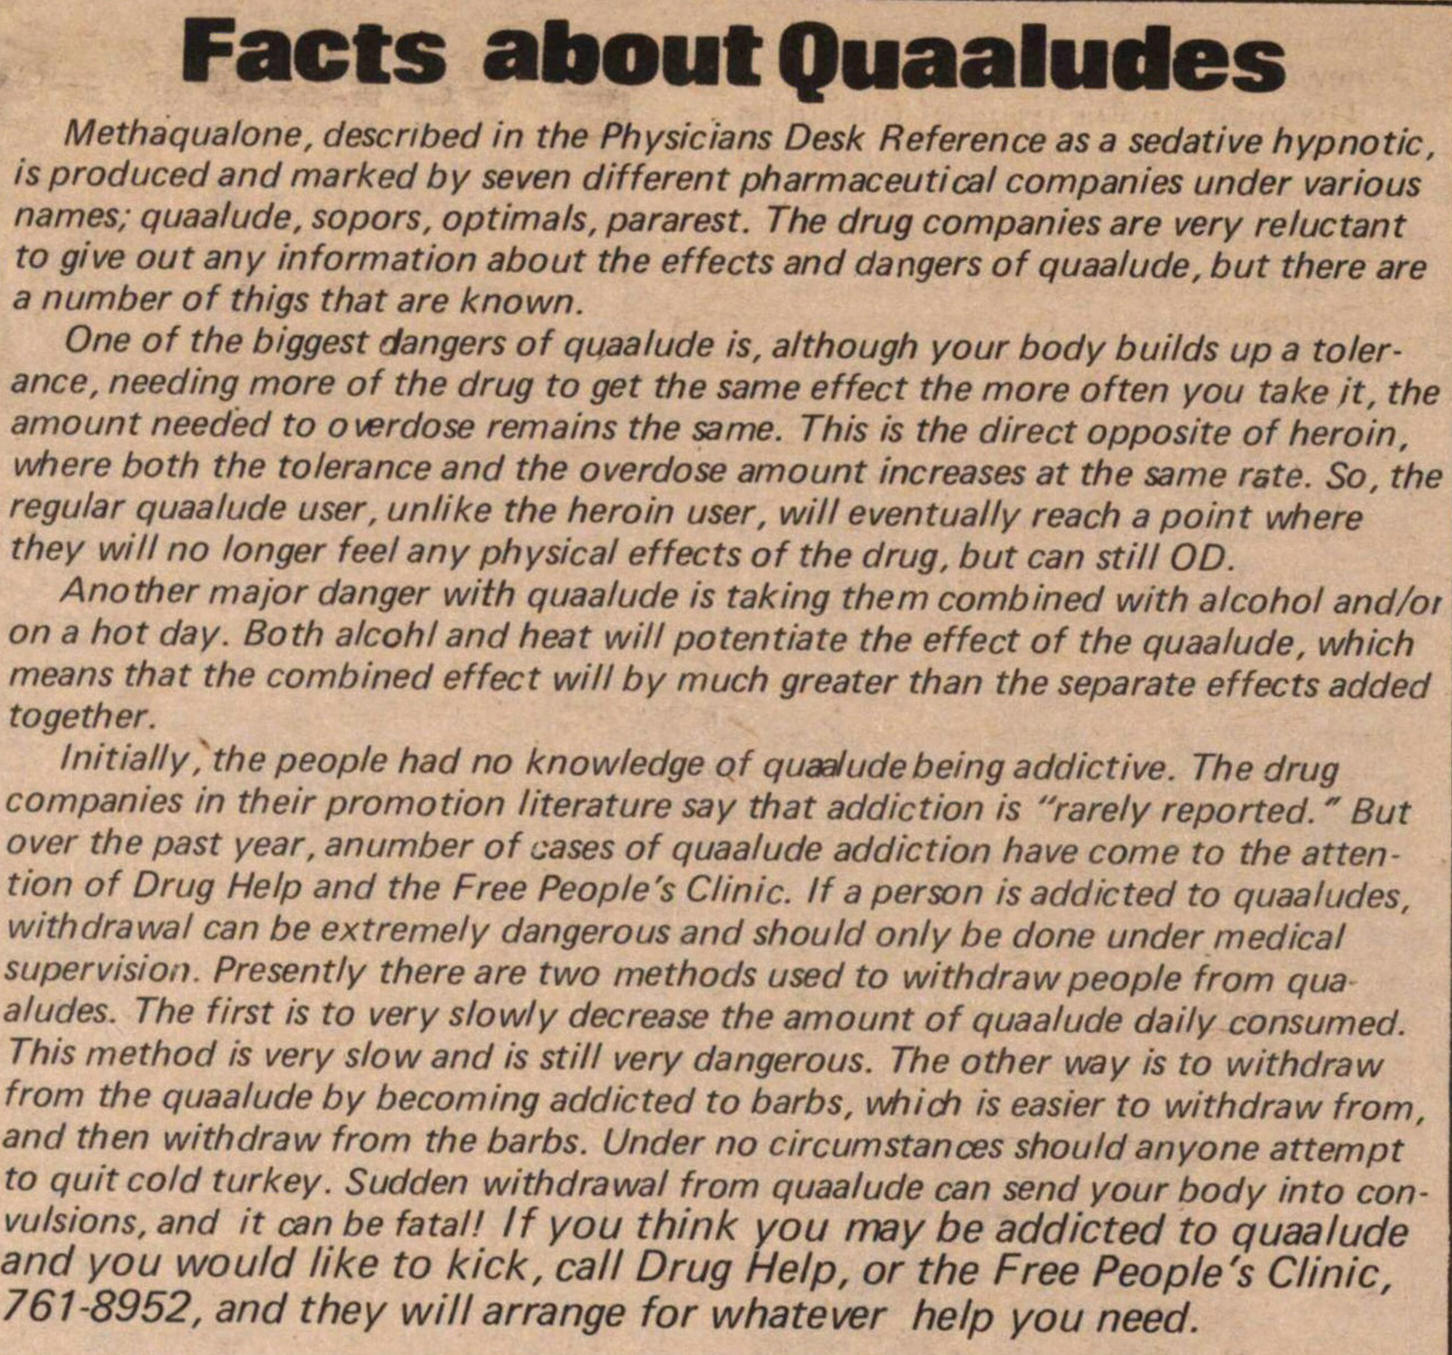 Facts About Quaaludes image